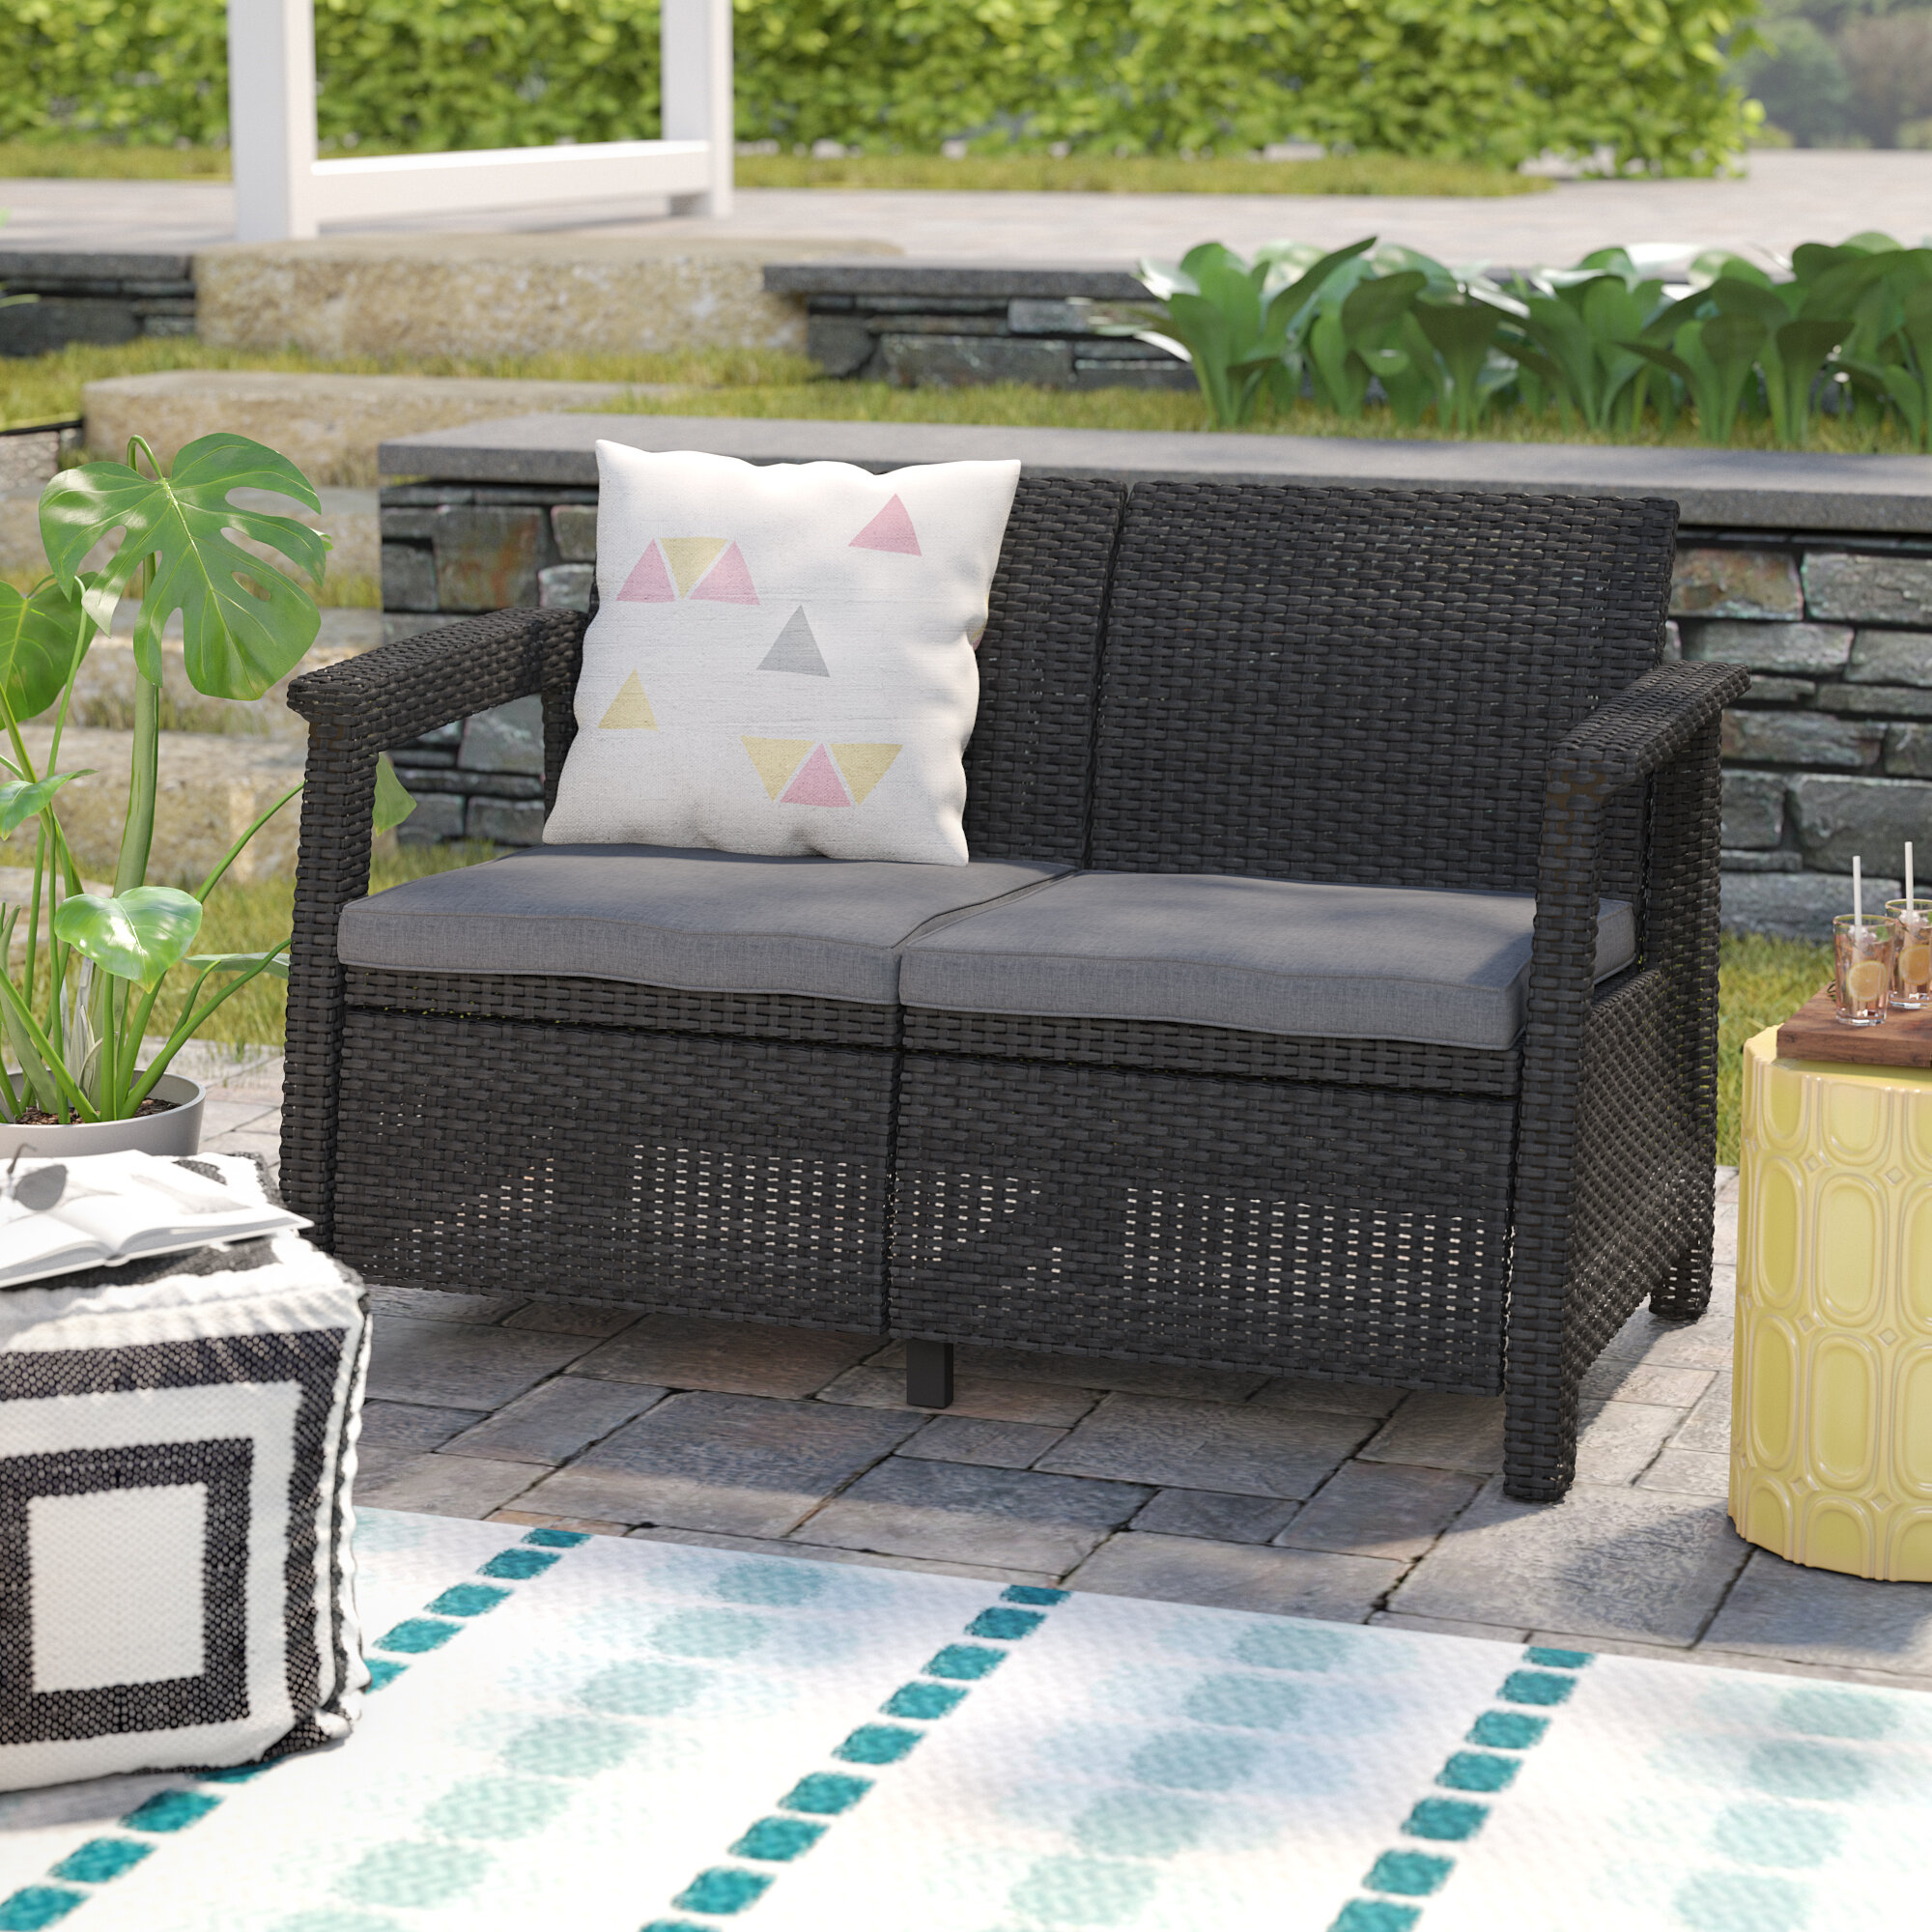 reviews wayfair outdoor with patio pdx wicker loveseat cushions mosca world menagerie